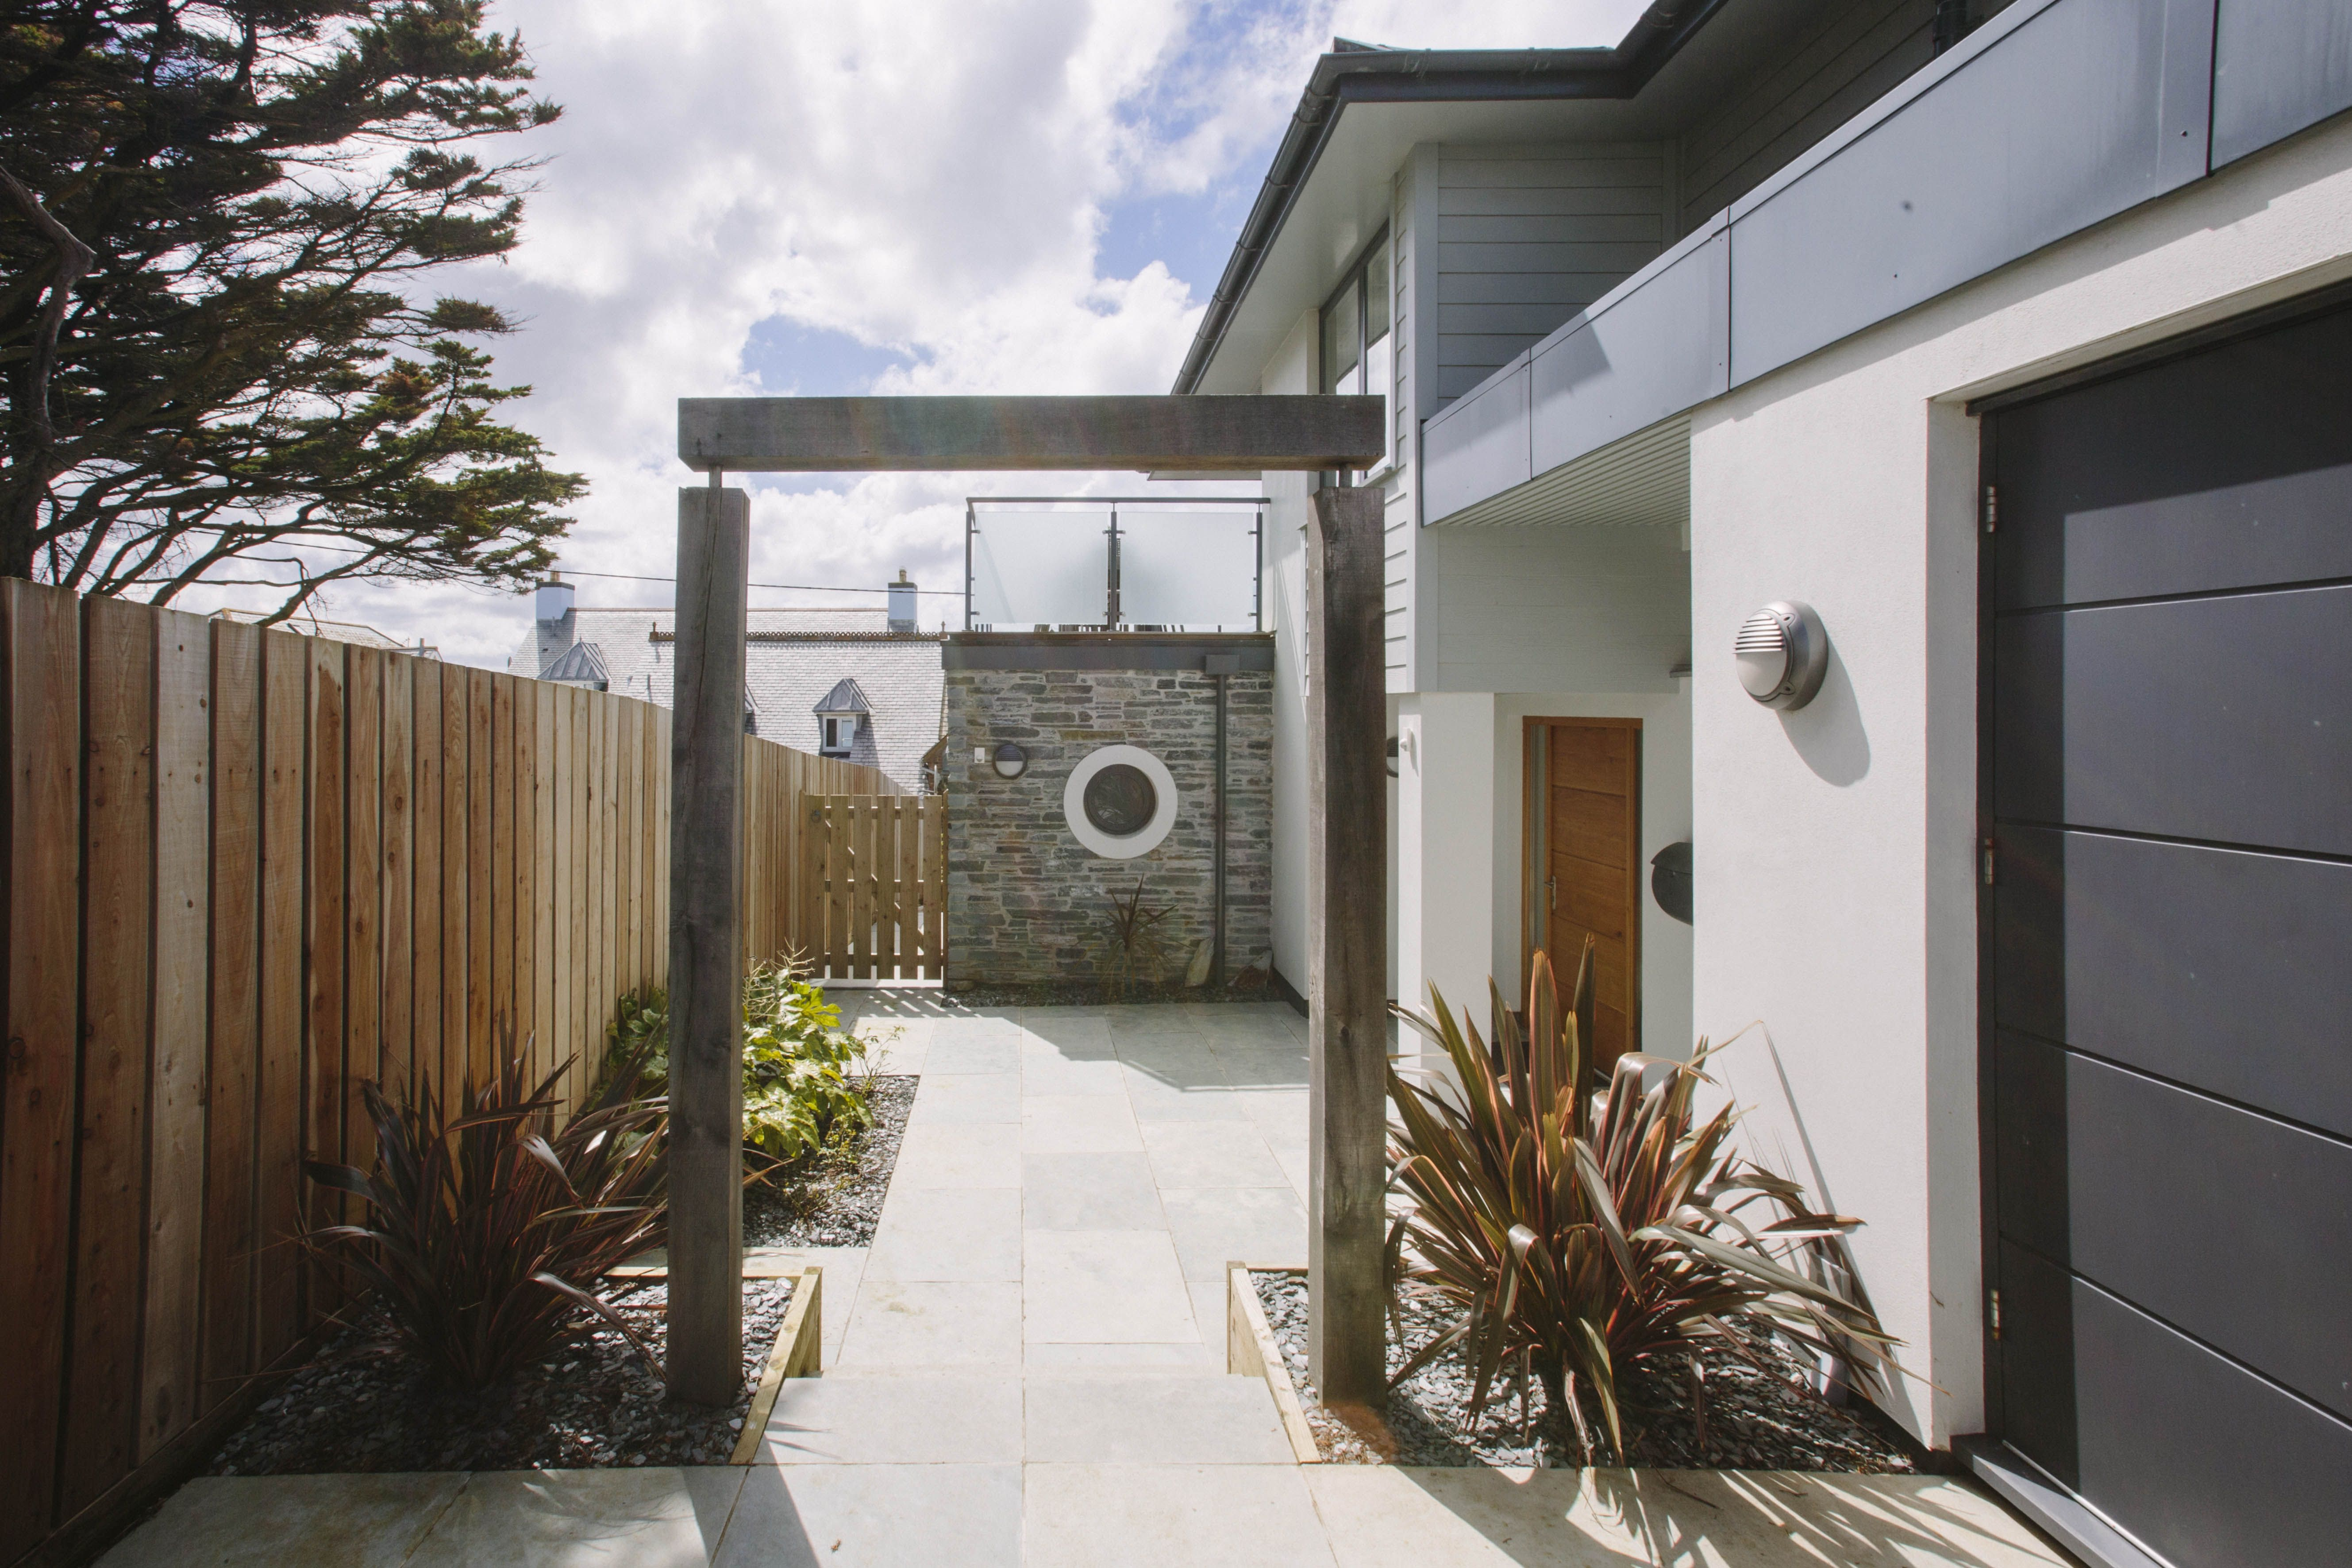 Rosemar is a striking three-storey house created from a beautiful combination of stone, glass and wood. Stylish wooden archways, porthole windows and carefully planted beds create a contemporary ambience.